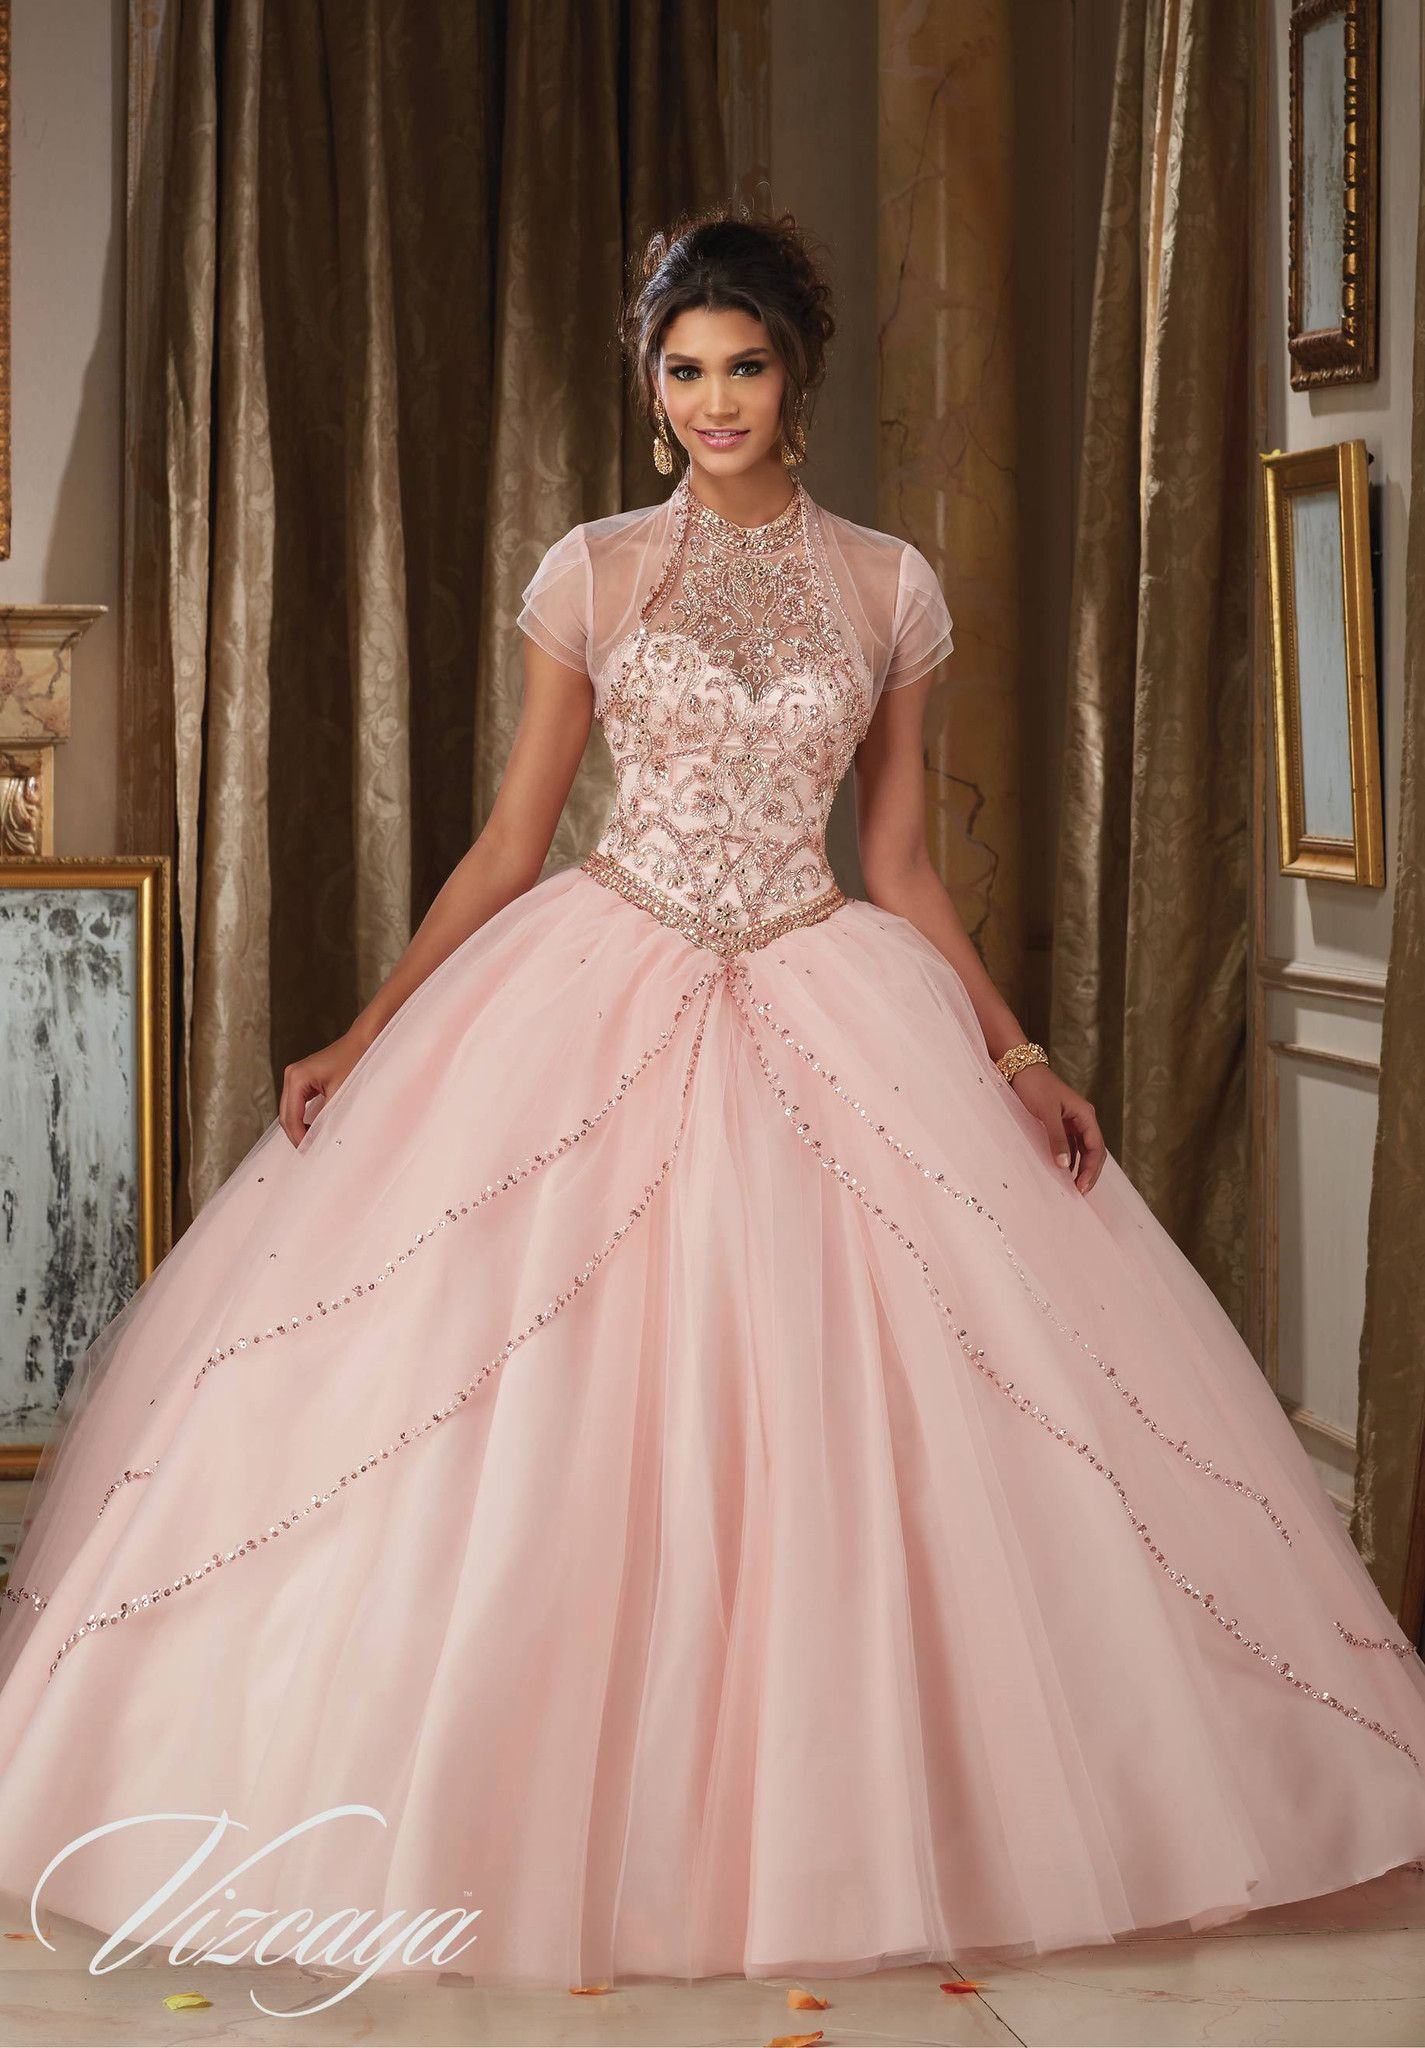 Mori Lee Quinceanera Dress 89114 | 15 años, Vestiditos y Años